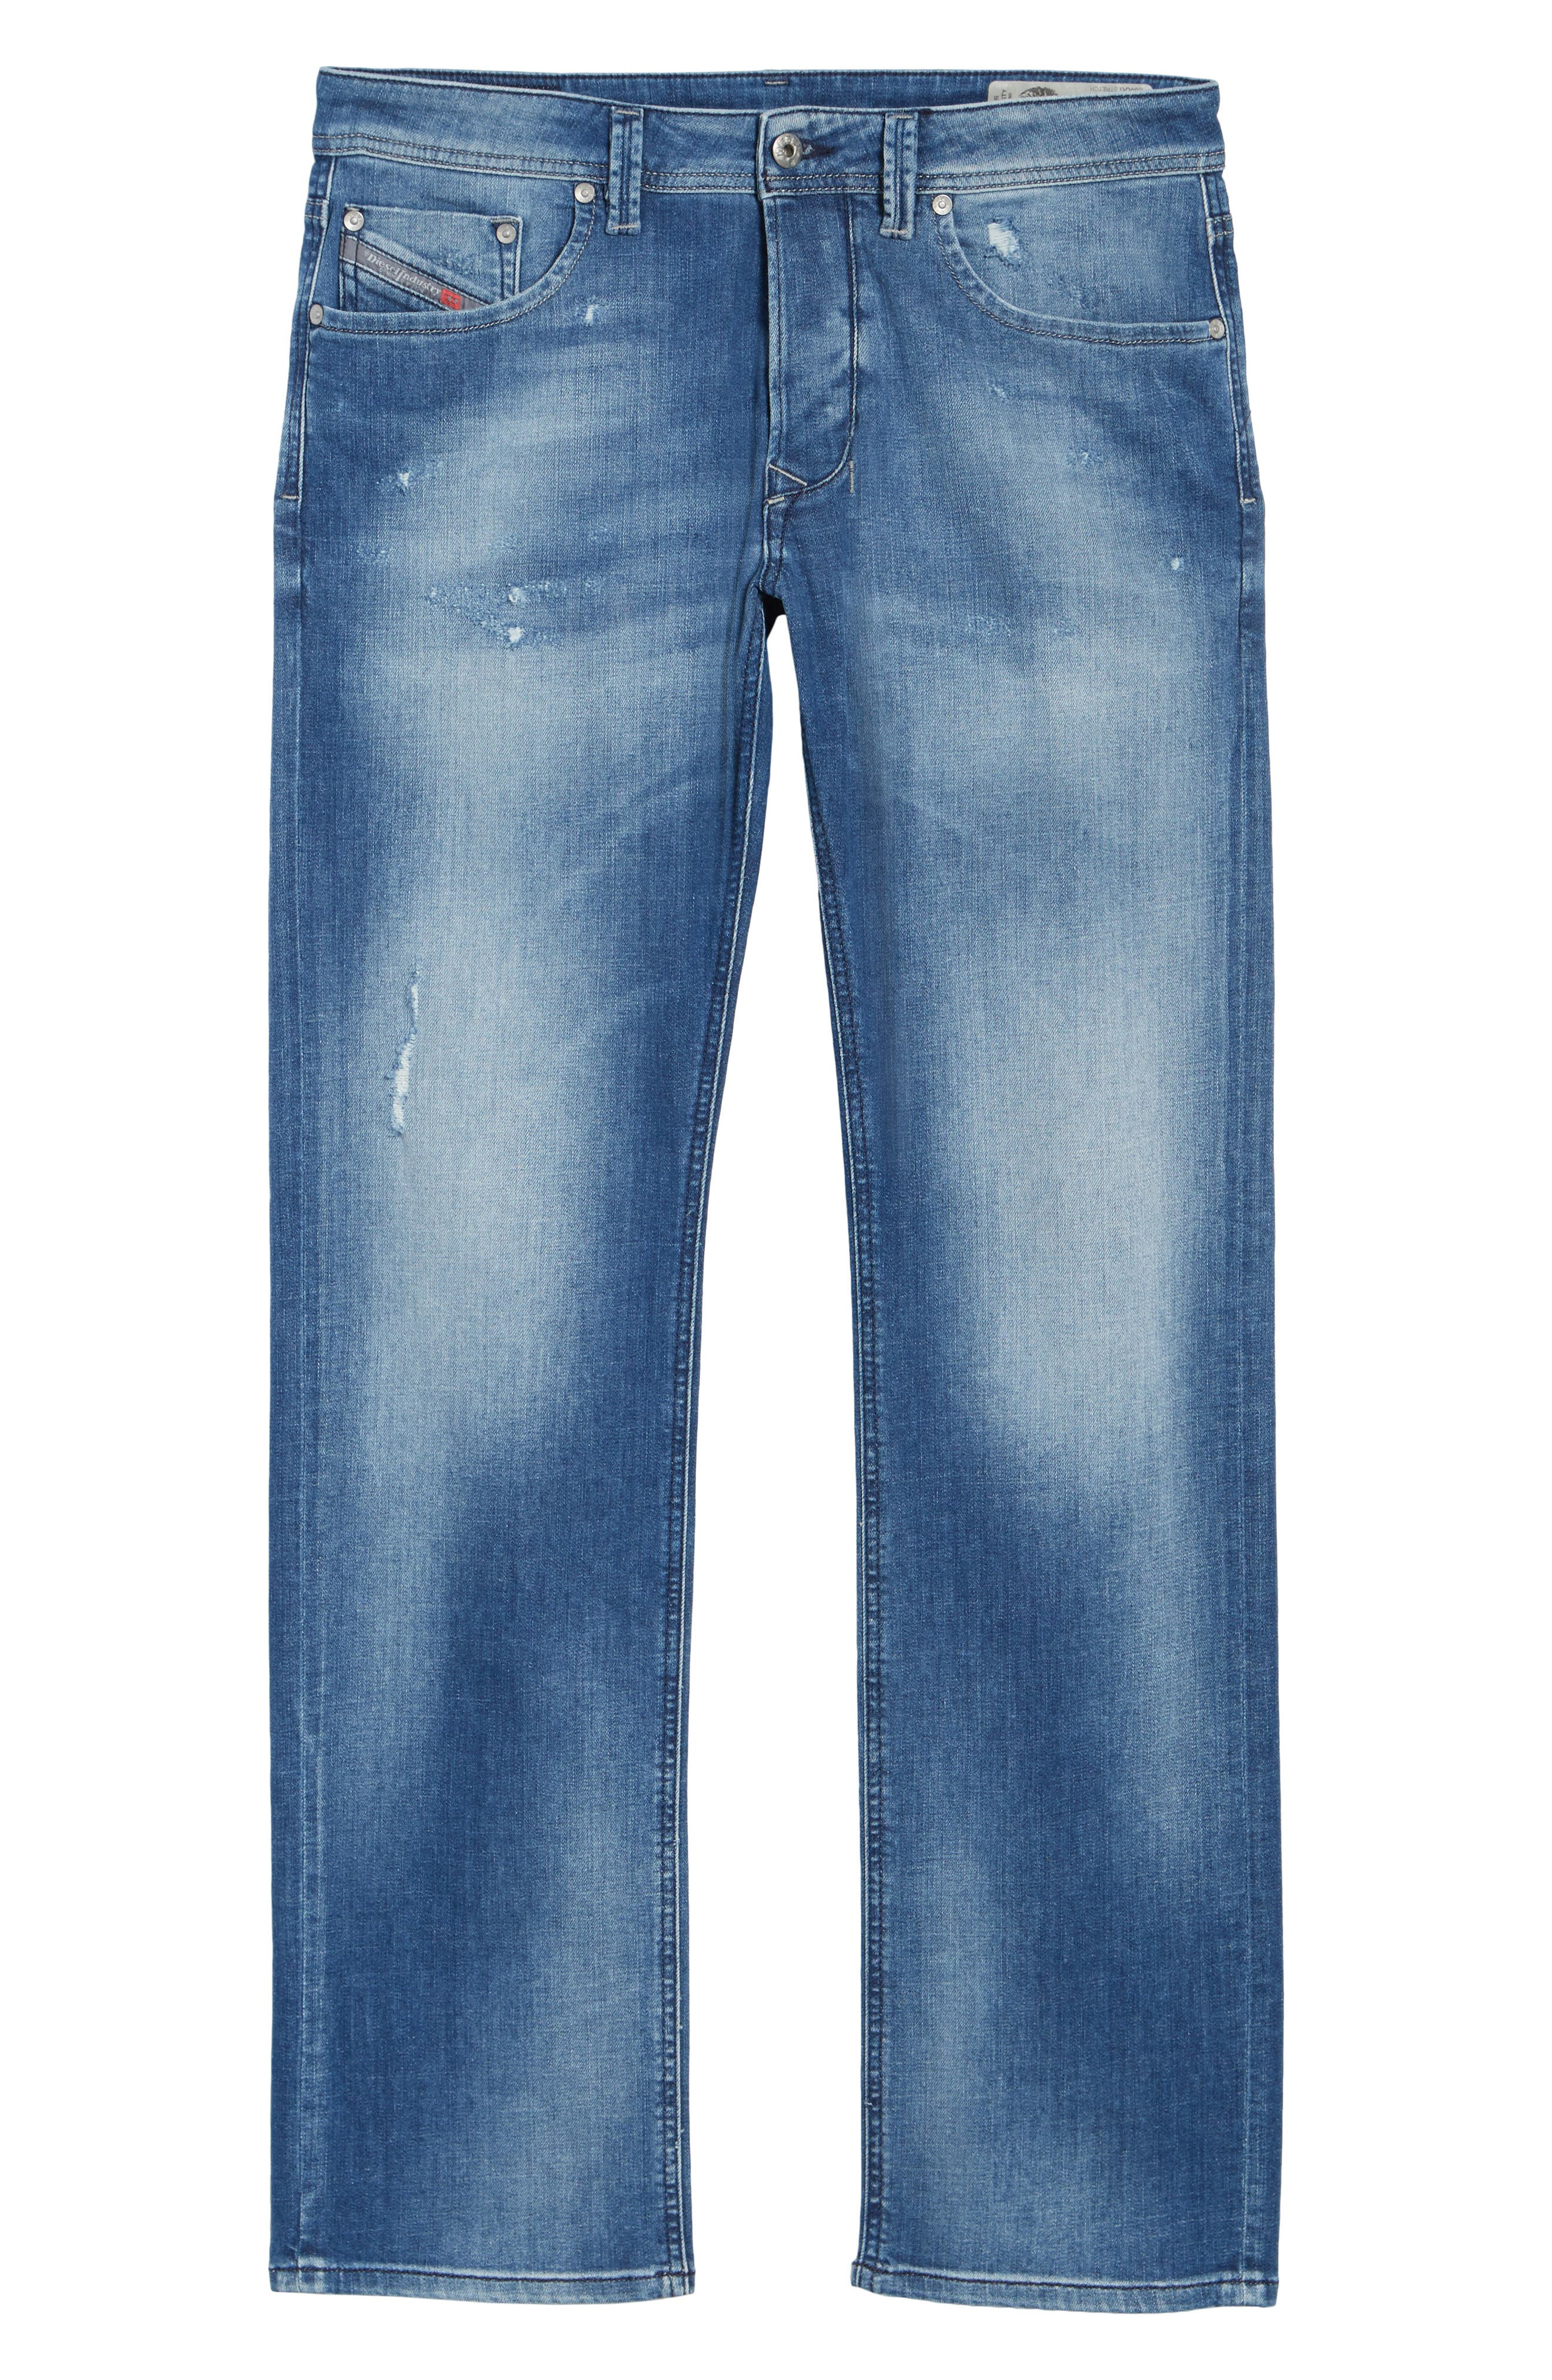 Larkee Relaxed Fit Jeans,                             Alternate thumbnail 6, color,                             084Qg